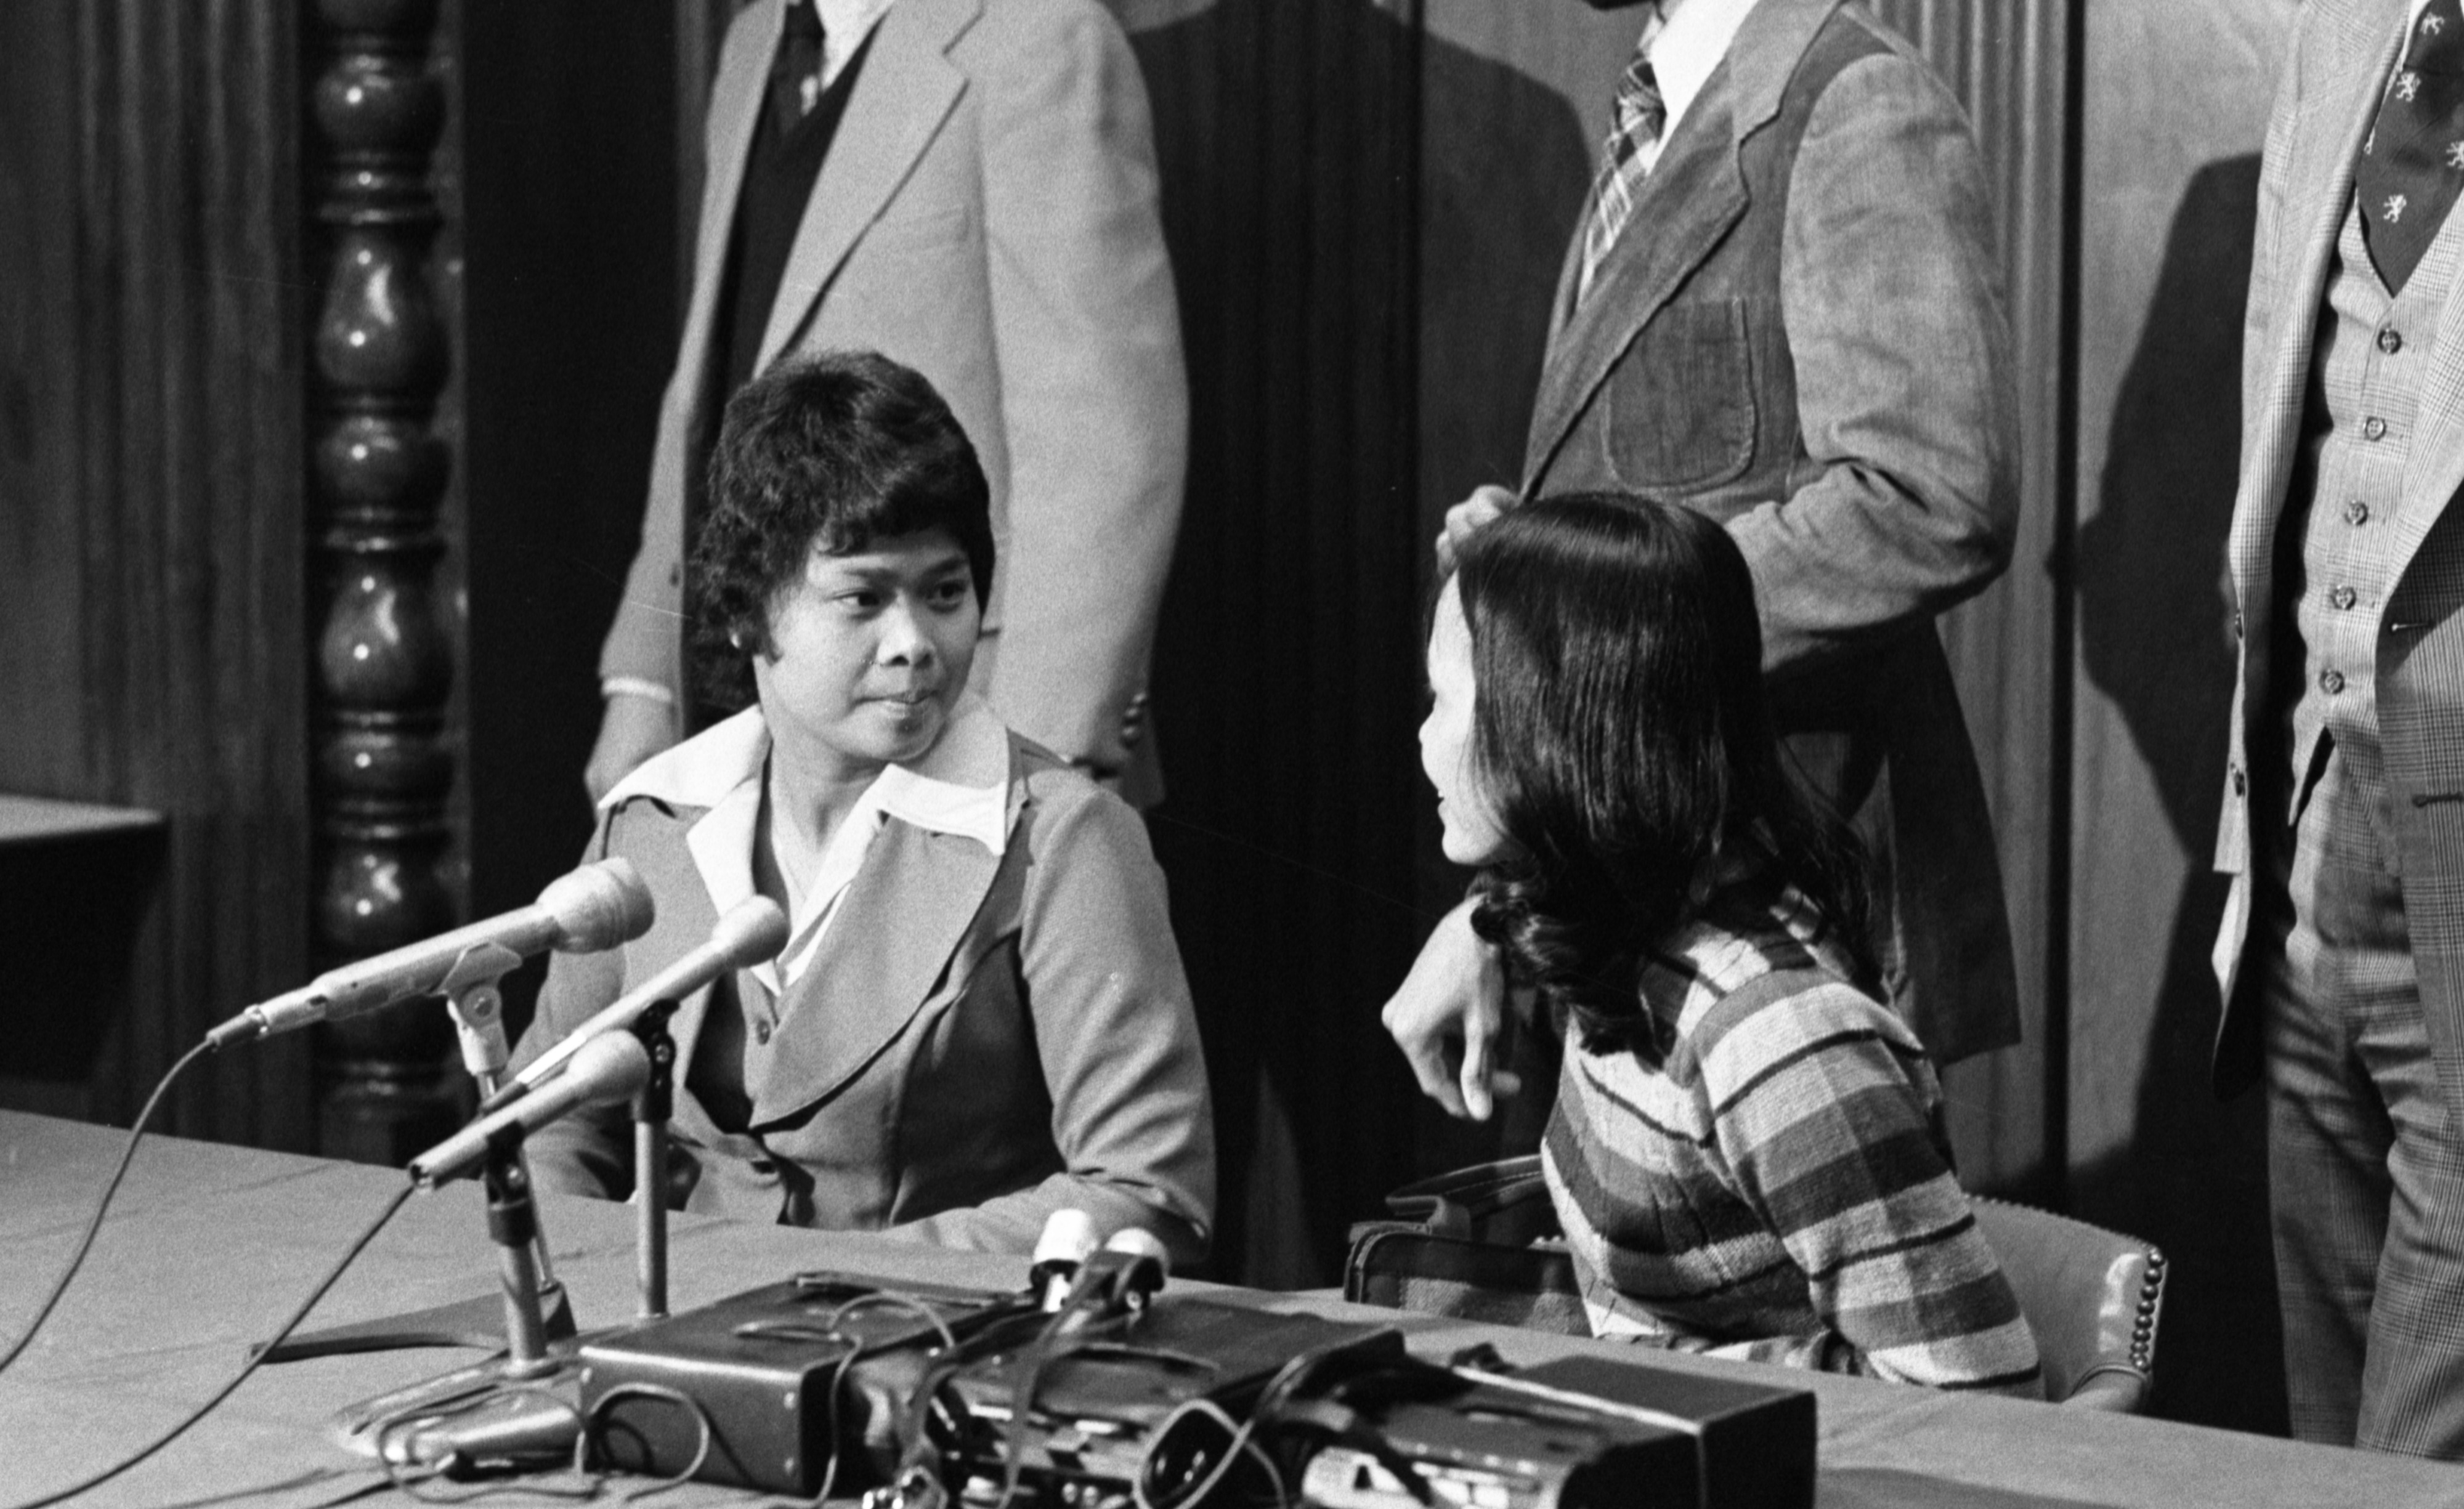 Filipina Narciso & Leonora Perez At Press Conference After Charges Dismissed, Detroit, February 1978 image